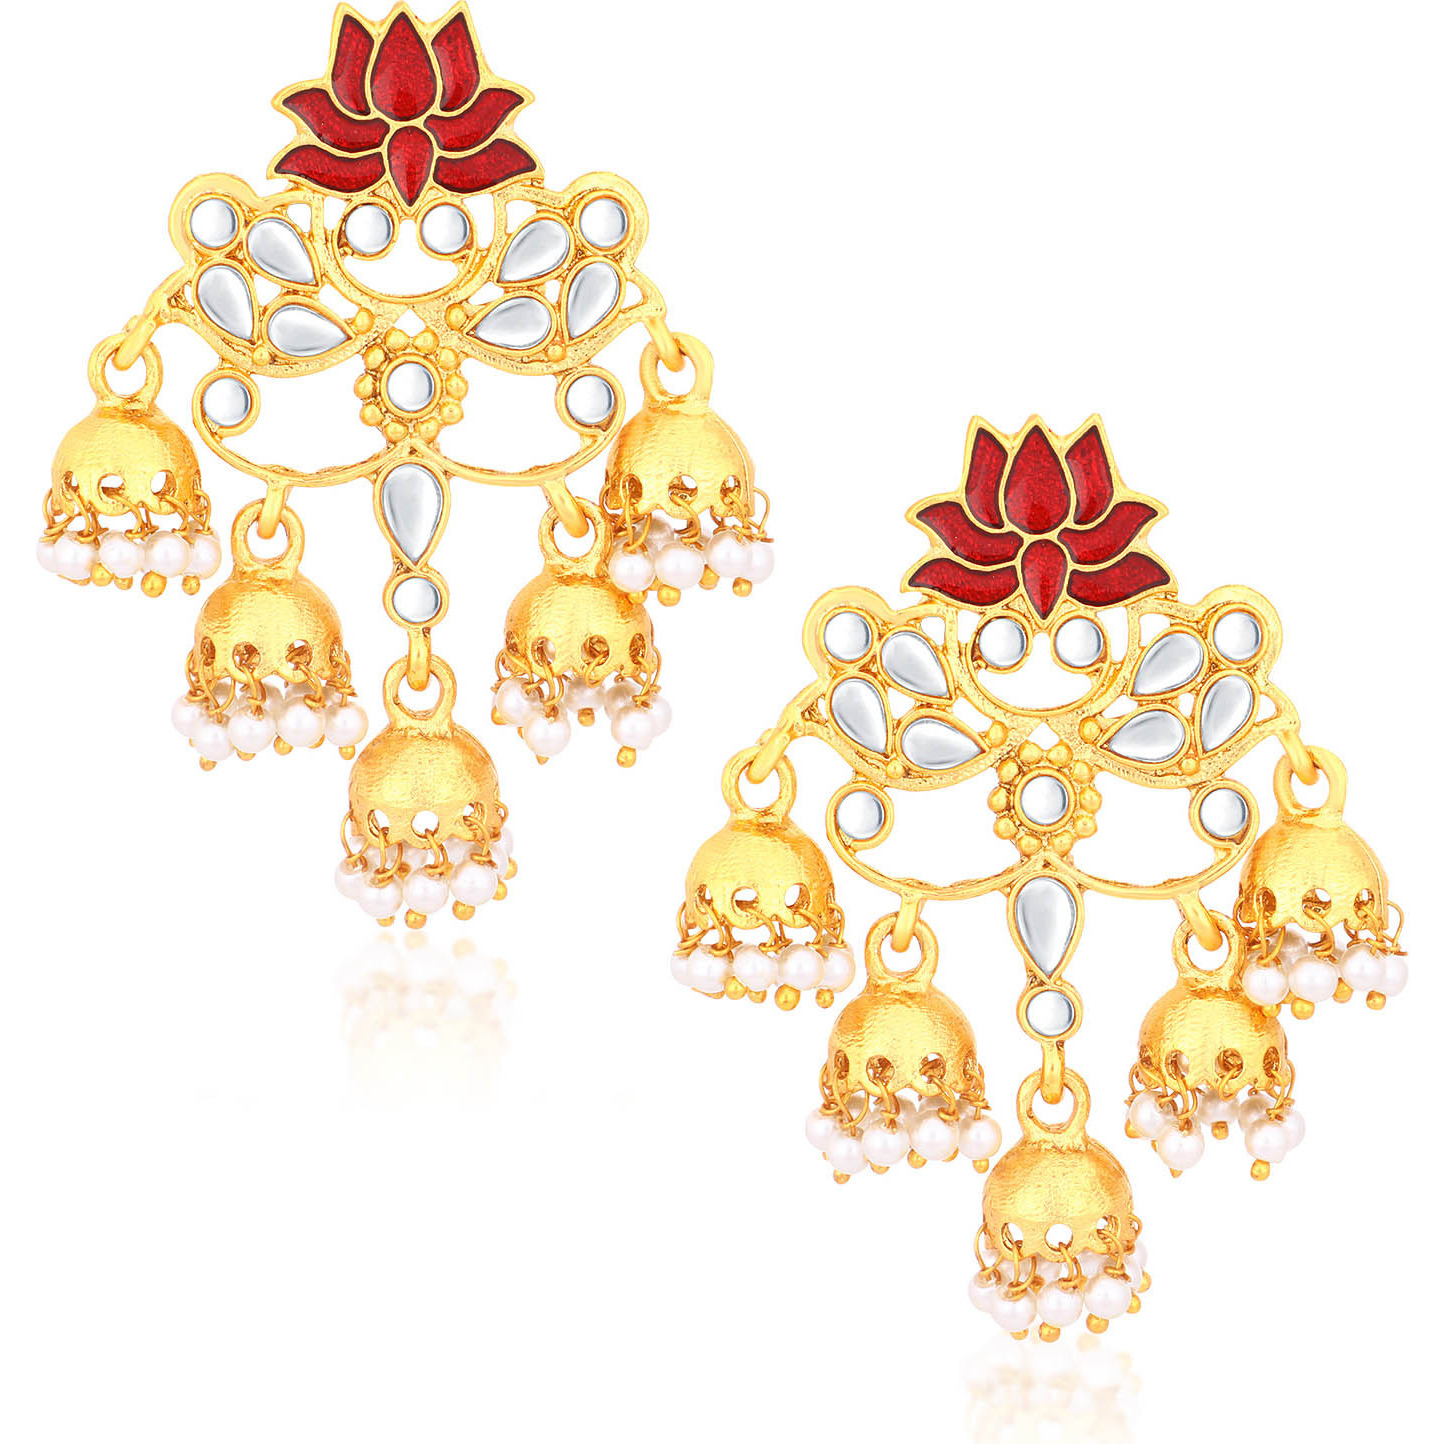 Sukkhi Indian stylish Bollywood jewelry collection Charming Gold Plated Lotus Meenakari Chandelier Earrings For Women